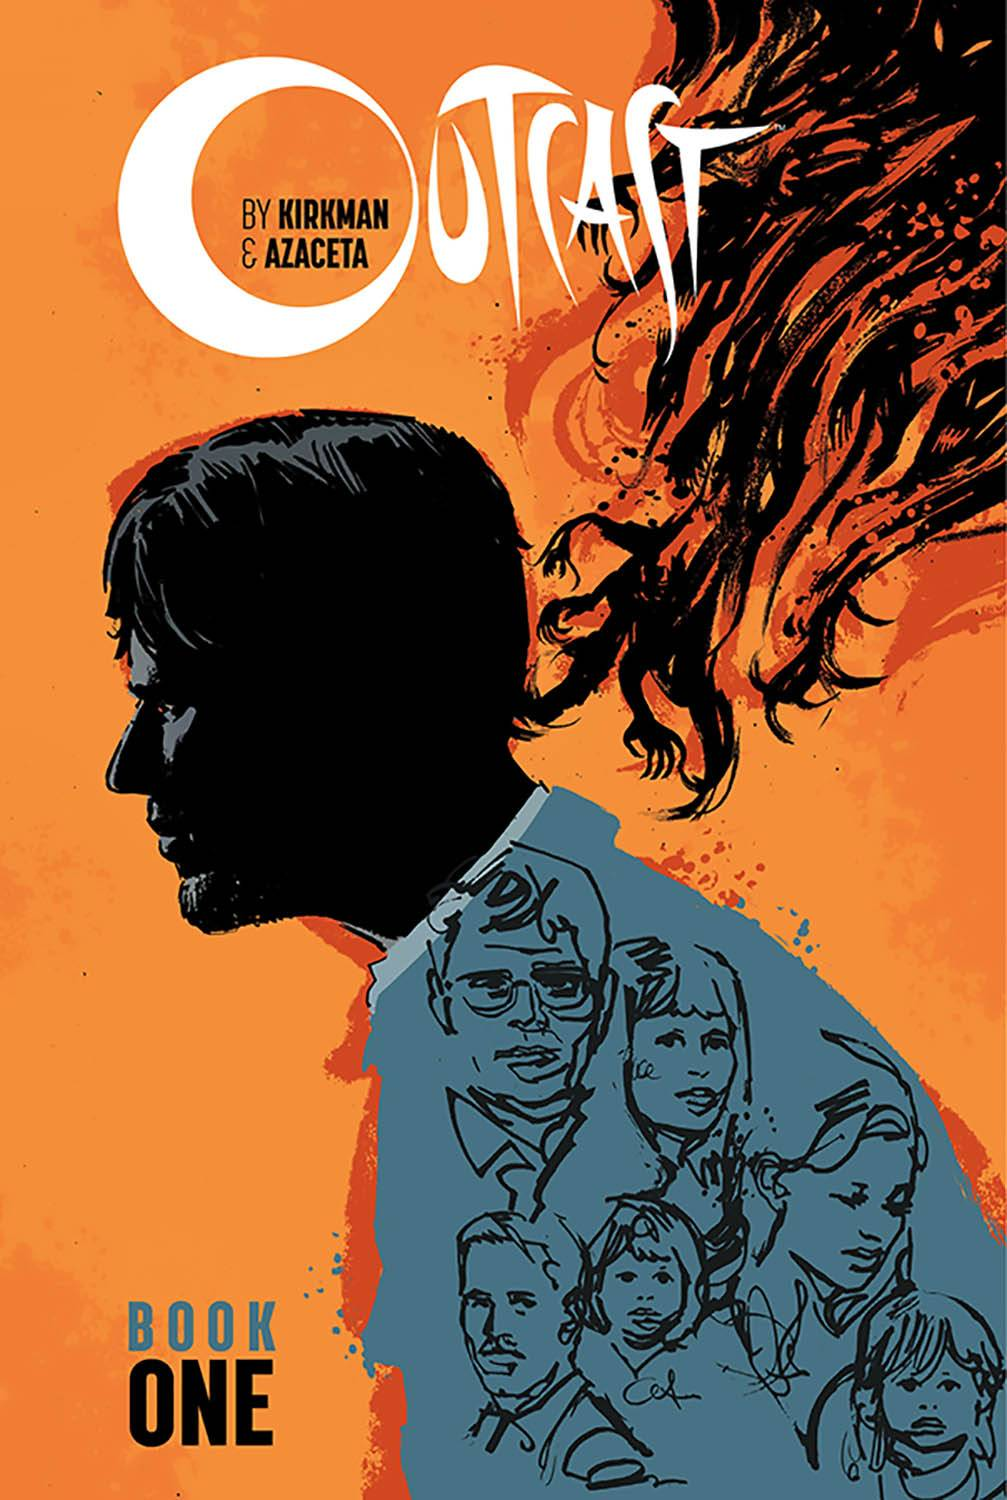 OUTCAST BY KIRKMAN & AZACETA HC BOOK 01 (SEP160791) (MR)